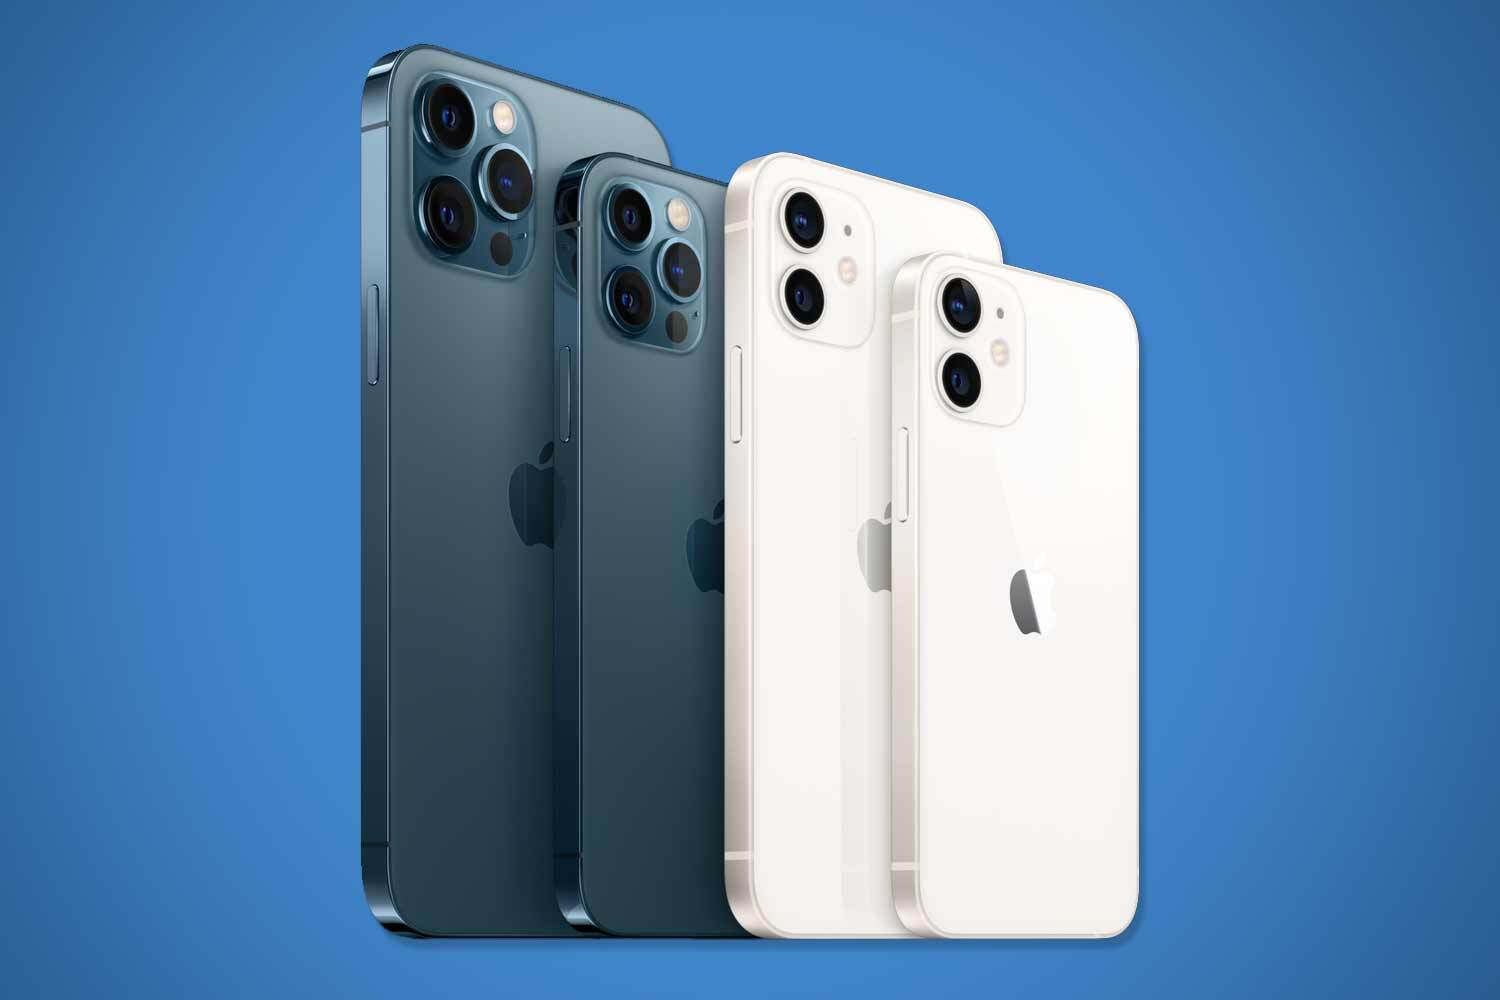 The iPhone 12 Pro Max (far left) and the iPhone Mini (far right) go on sale worldwide on November 6. The iPhone 12 Pro (centre left) and iPhone 12 (centre right) hit shelves across the globe last month